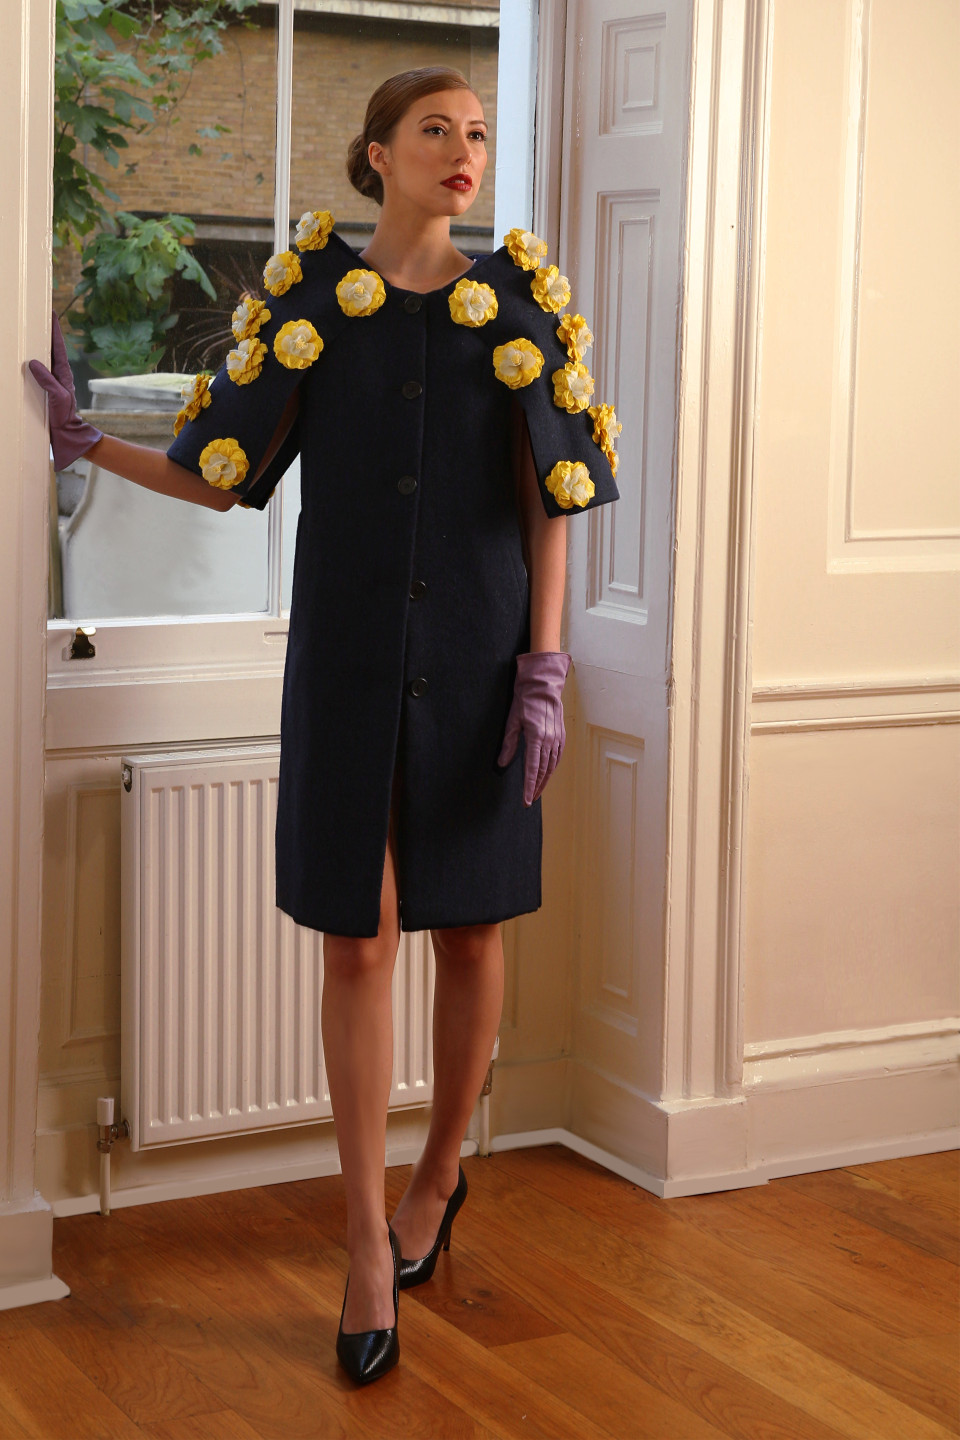 Blue tweed dress coat with yellow applique flowers - wedding outfit couture design